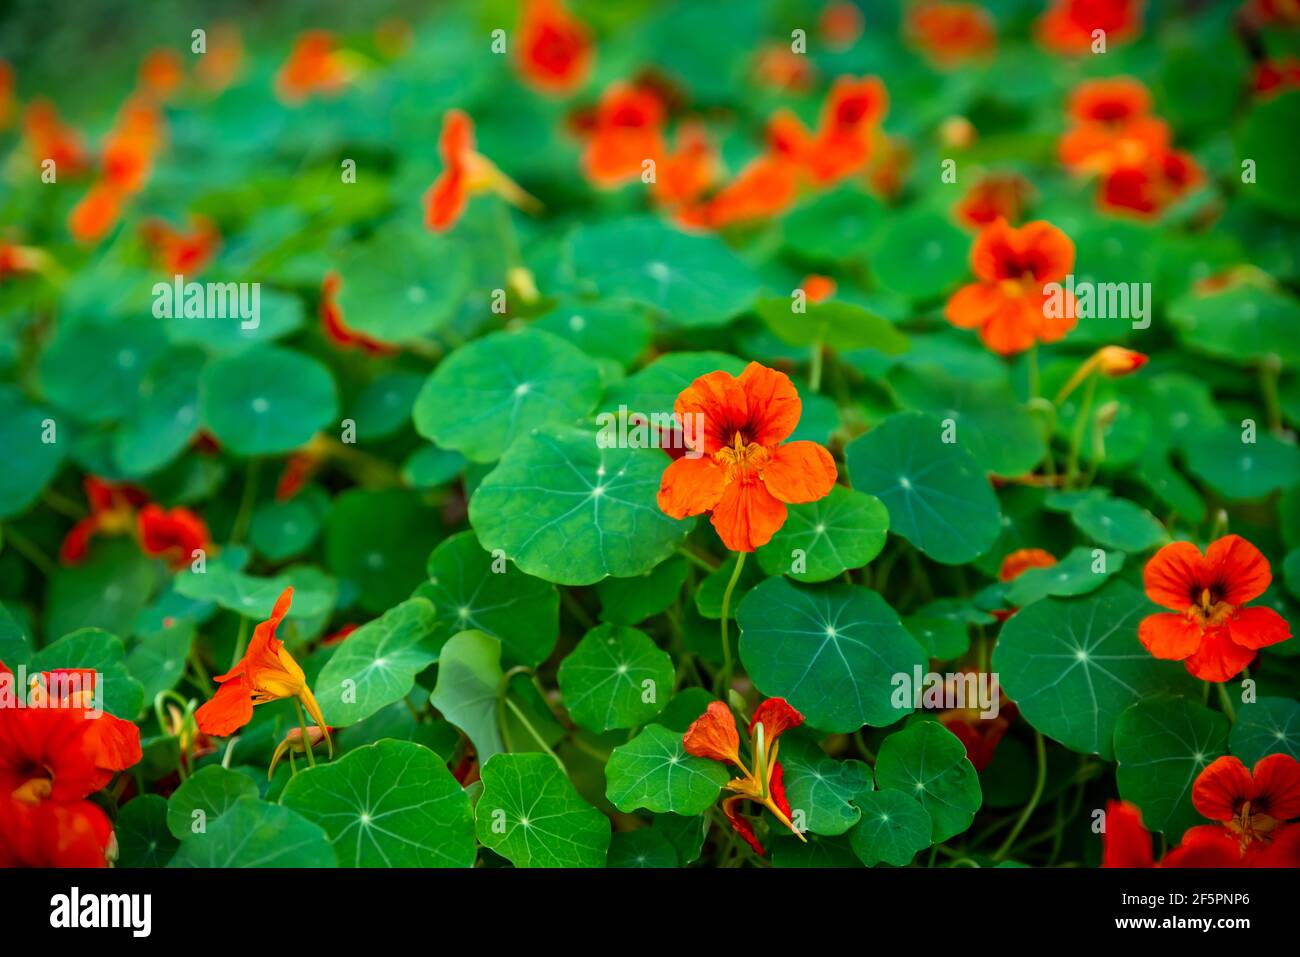 A large number of orange blooming edible flowers of Tropaeolum (Nasturtium called, too) and their green leaves in flower bed in garden. Stock Photo